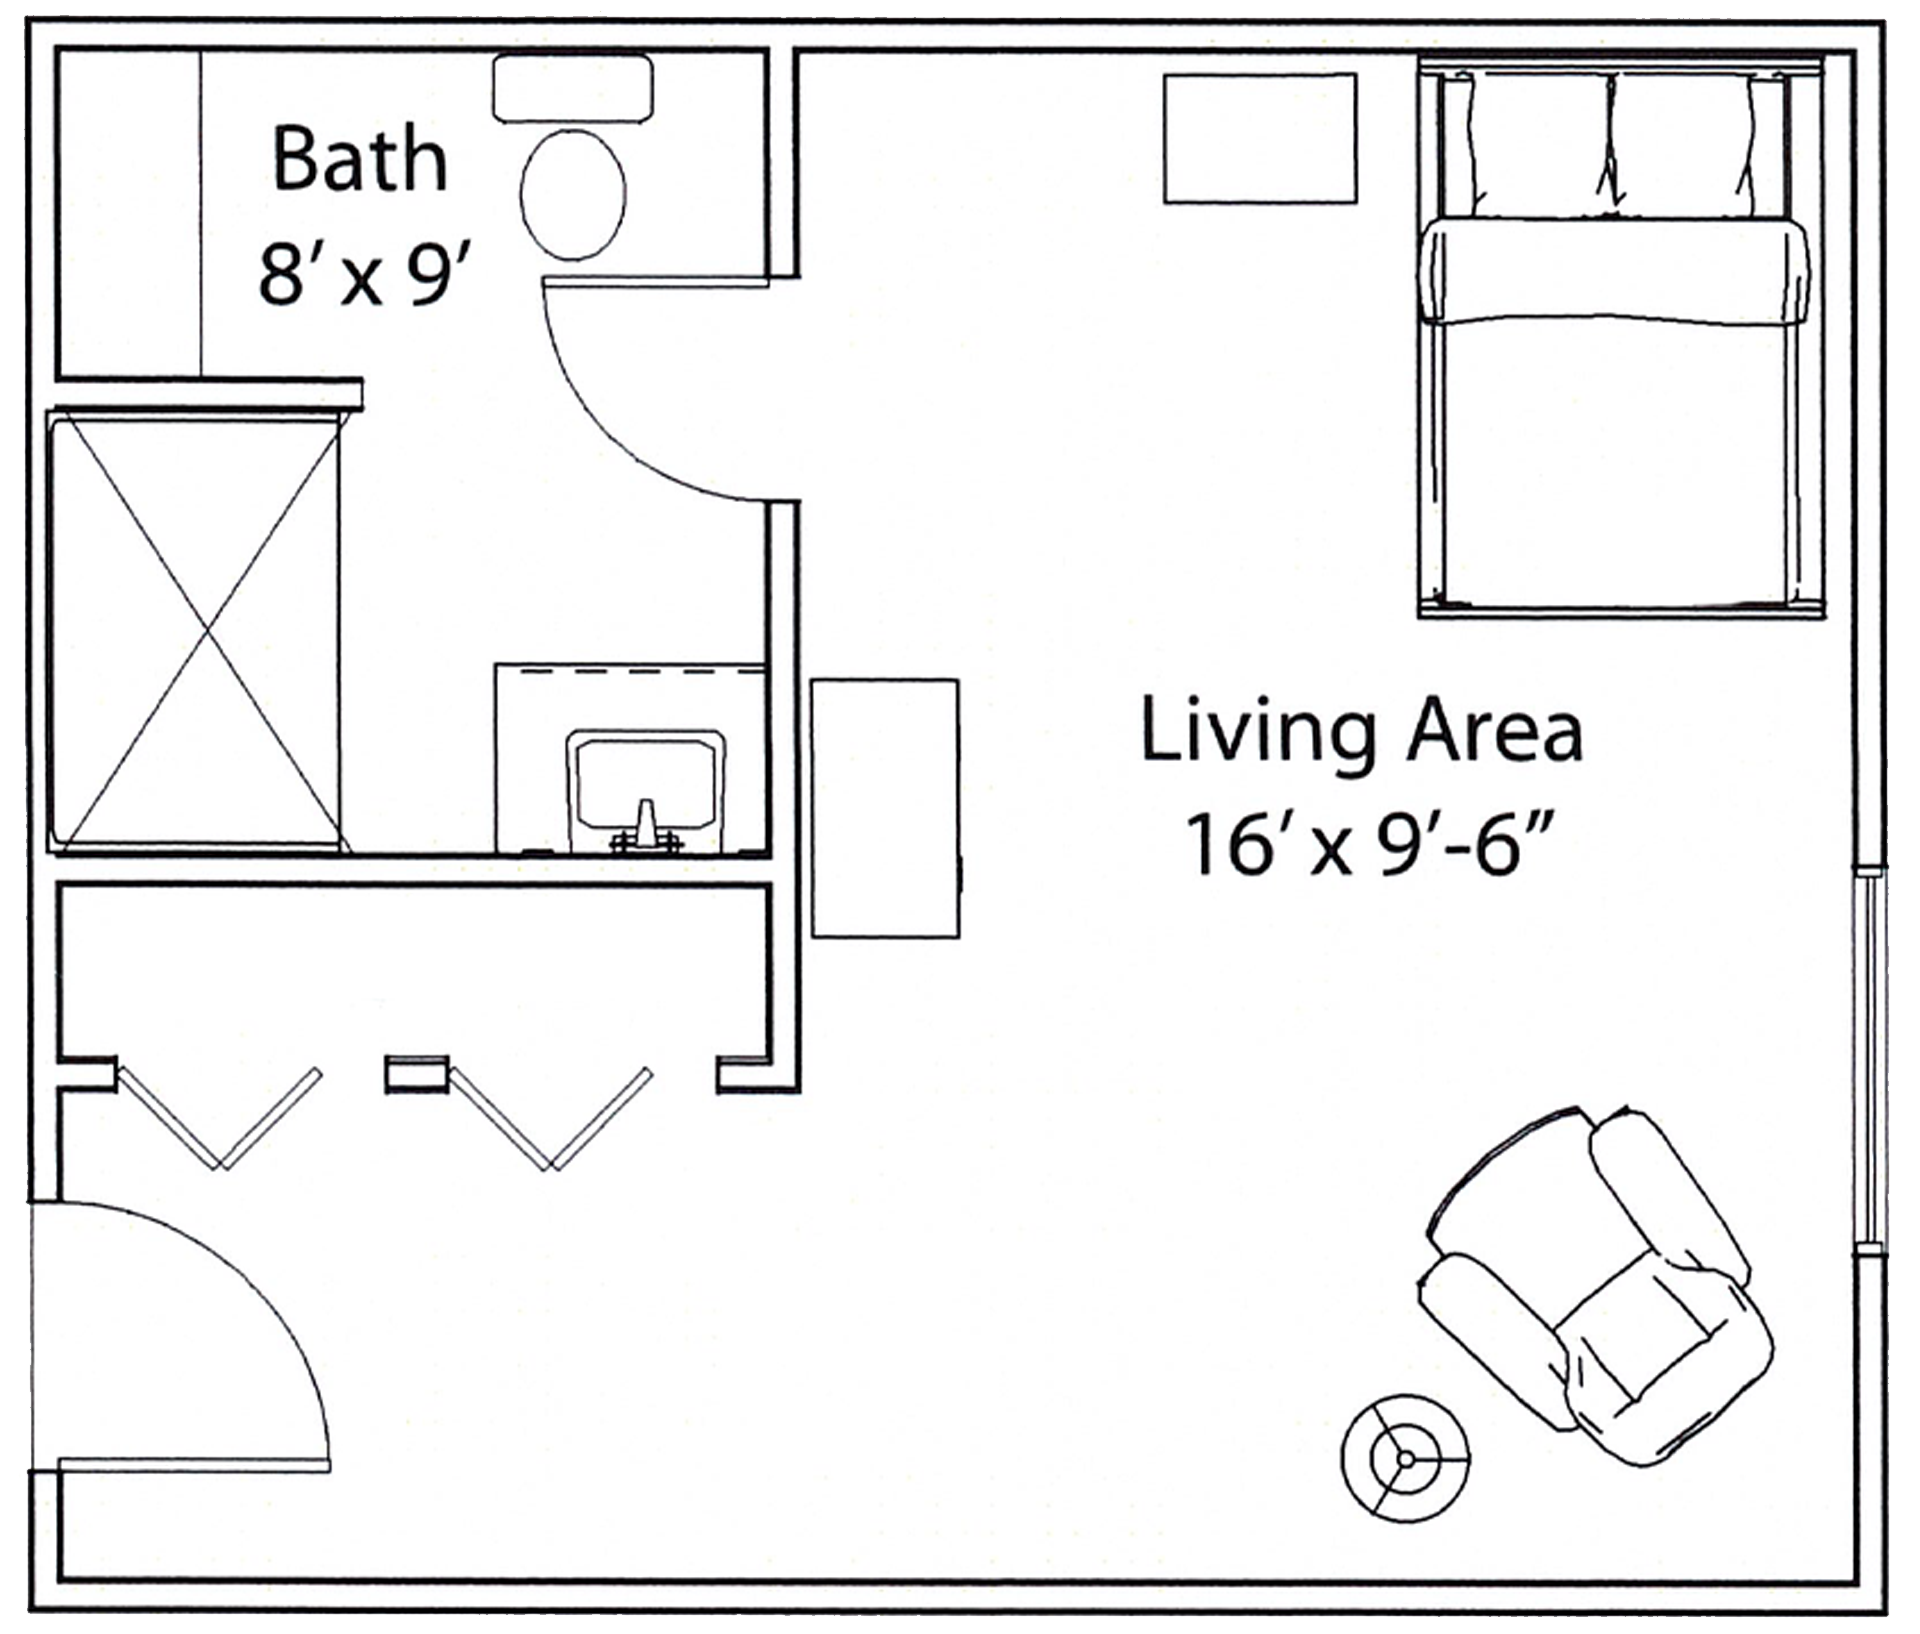 BartonWoodsWest - OneBedroomSingle - Floorplan.png